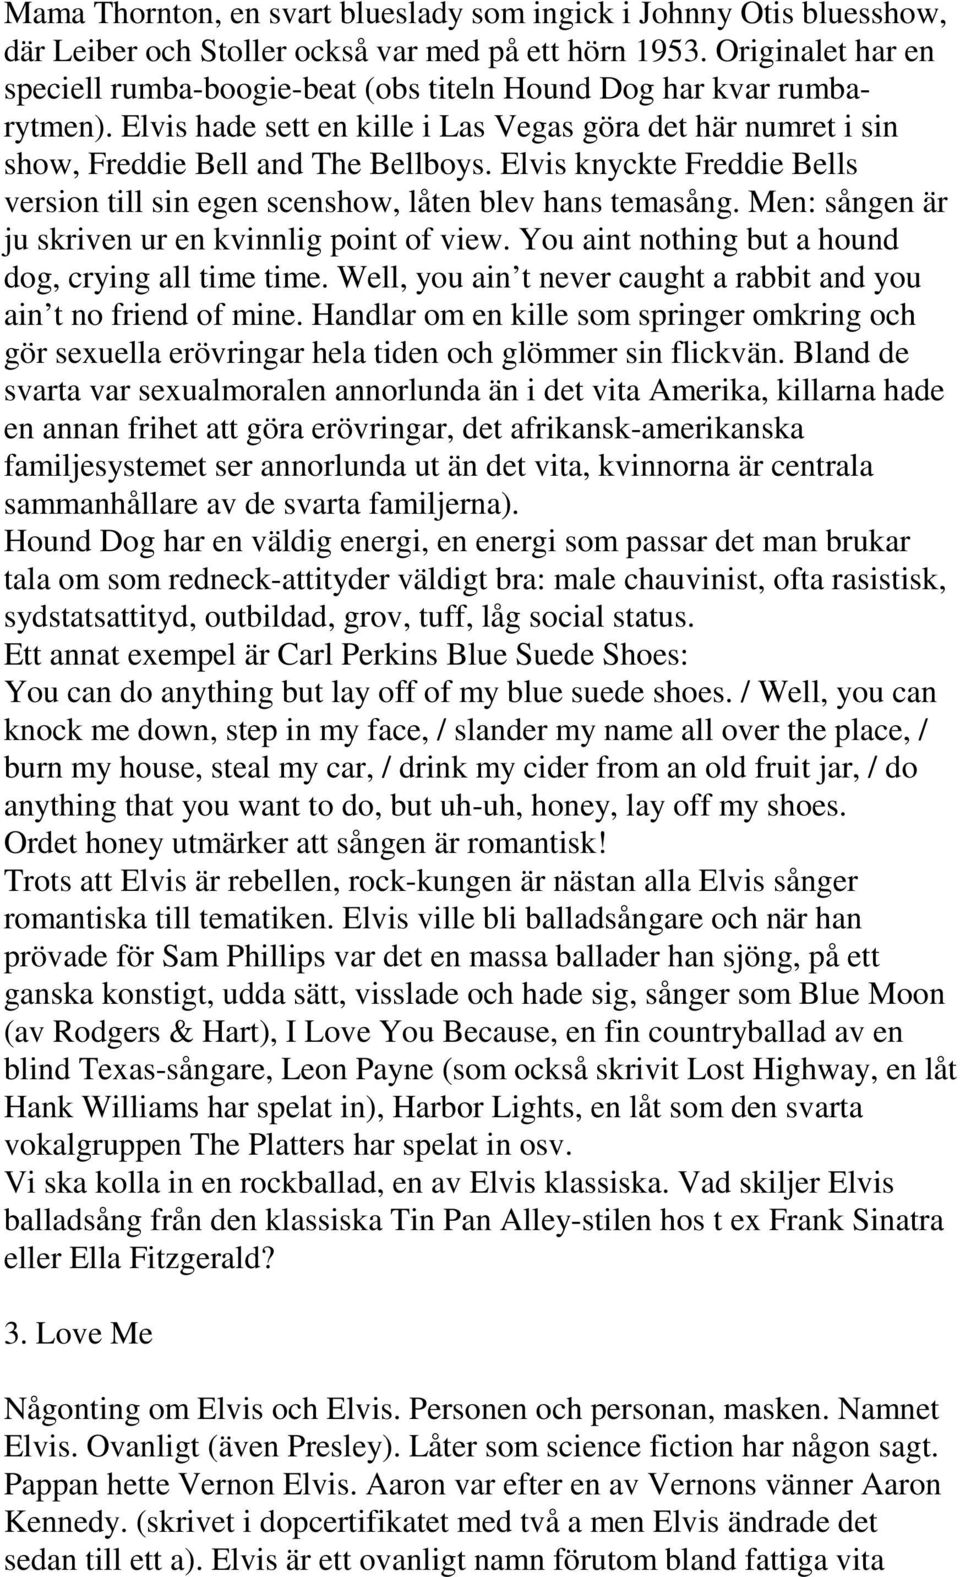 Elvis knyckte Freddie Bells version till sin egen scenshow, låten blev hans temasång. Men: sången är ju skriven ur en kvinnlig point of view. You aint nothing but a hound dog, crying all time time.